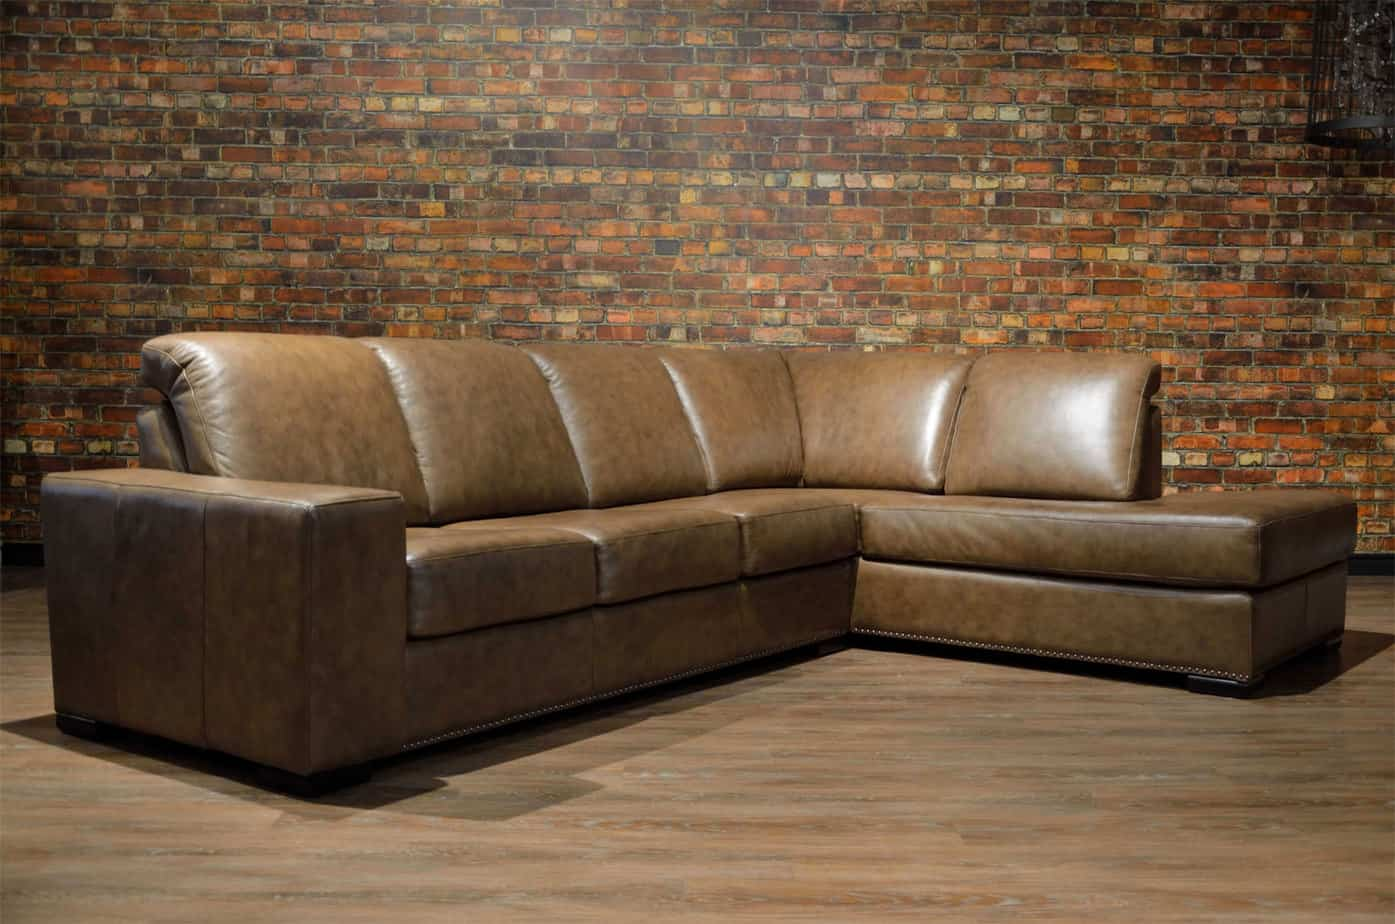 Leather Sofa Amp Sectional Choose Color Leather Amp Size